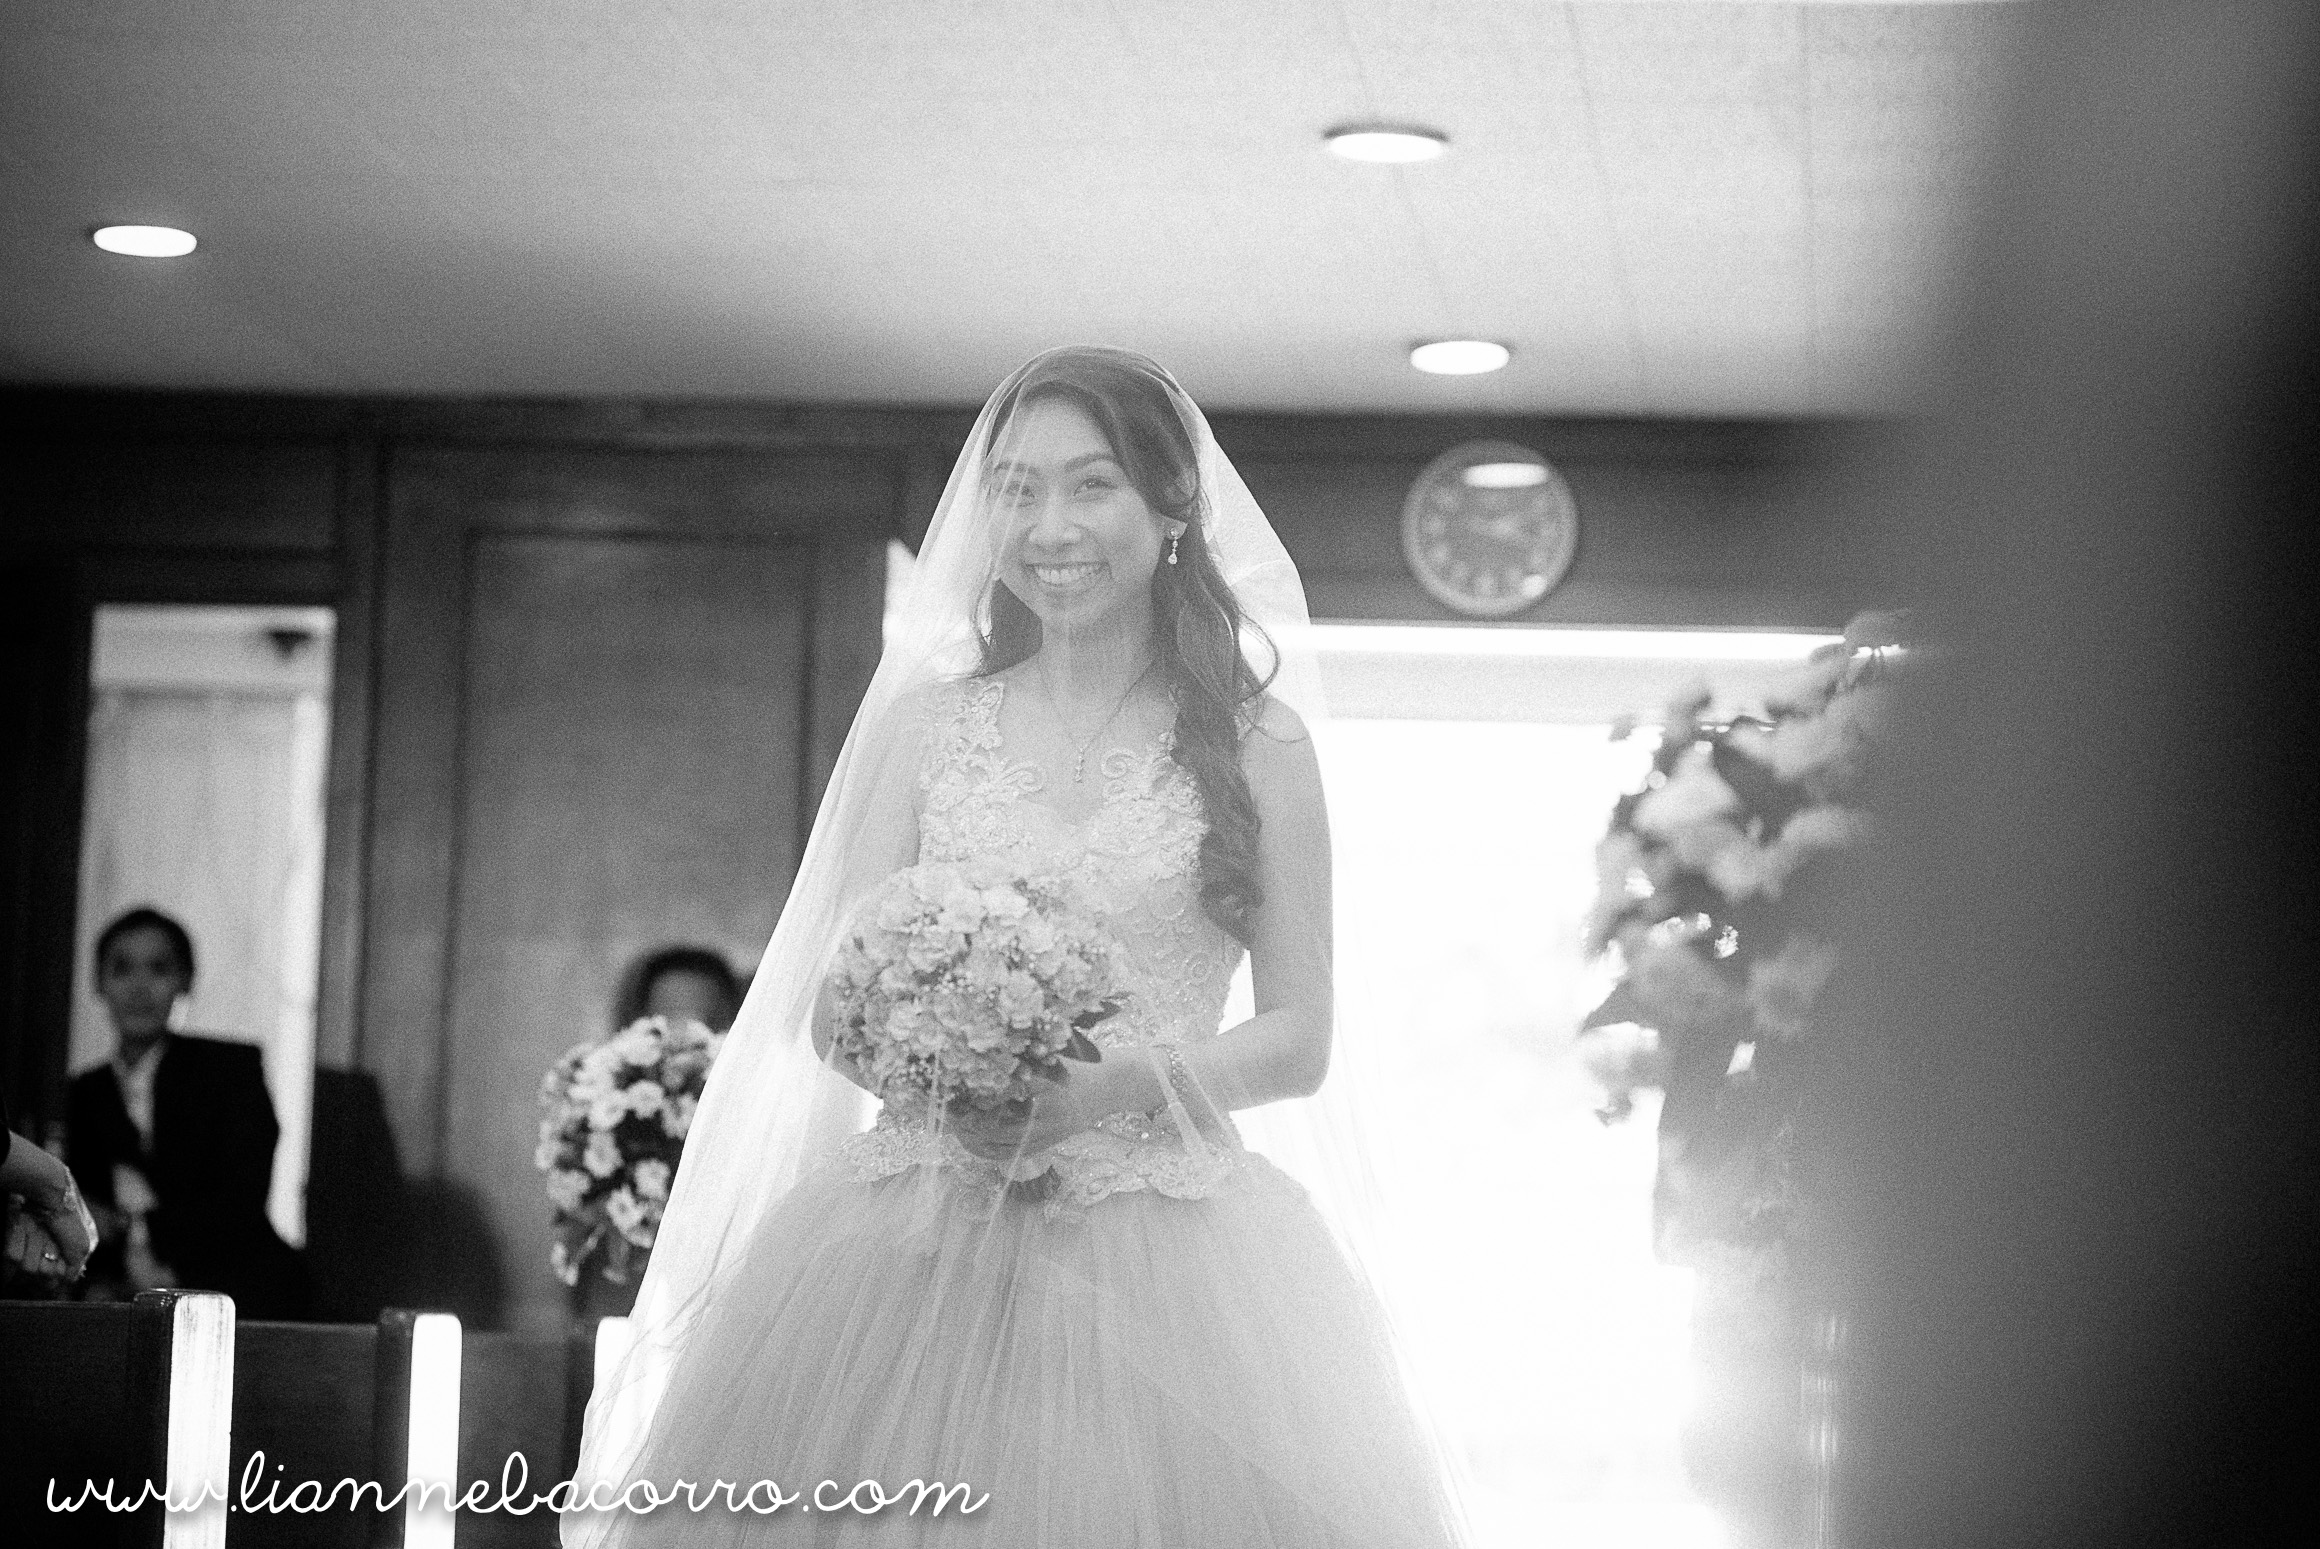 Dem and Kyra - Wedding Photography by Lianne Bacorro - Dan Rivera Photography-30